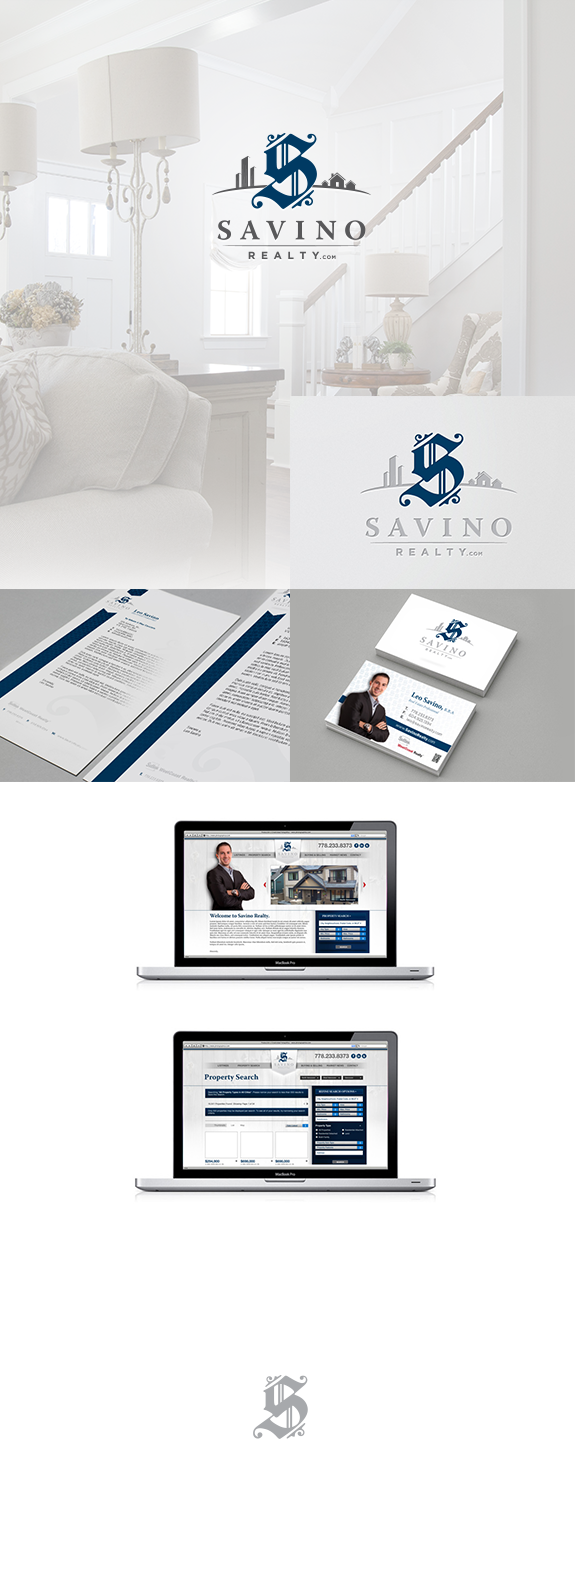 A visual compilation summarizing the brand development for Savino Realty.